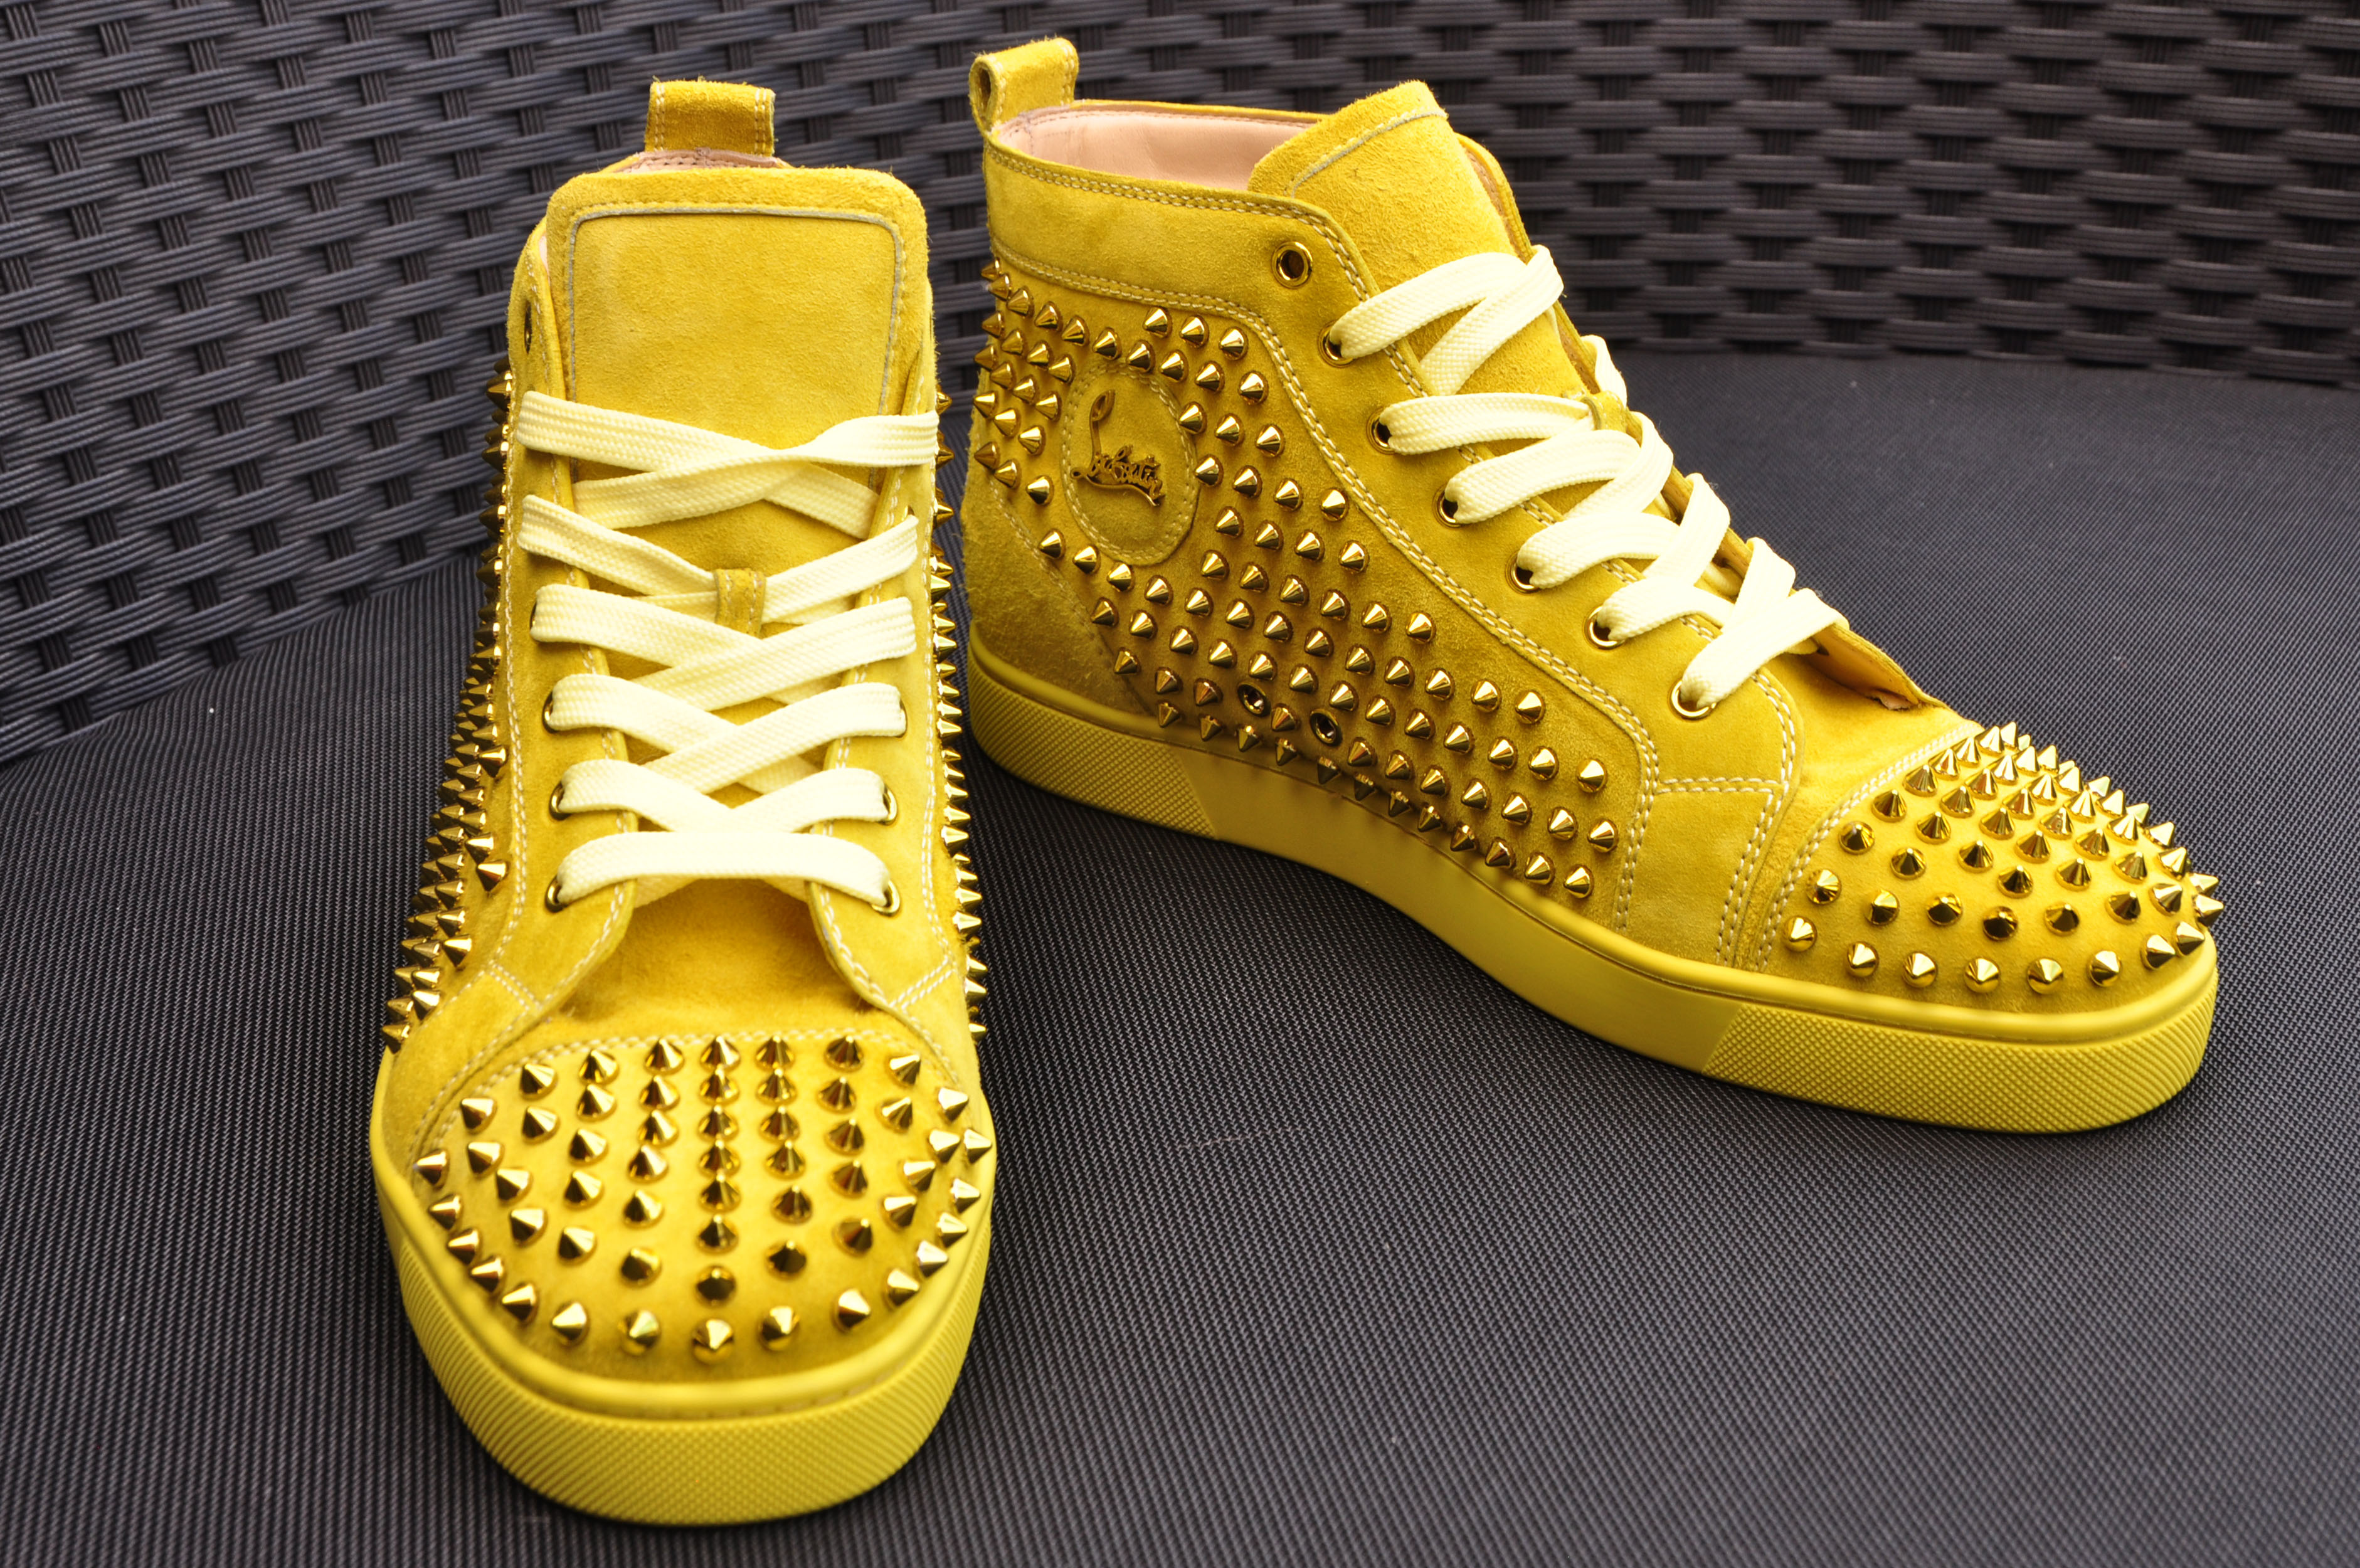 286b99218b4 CHRISTIAN LOUBOUTIN Authentic New Suede Mimosa Louis Metallic Spike ...